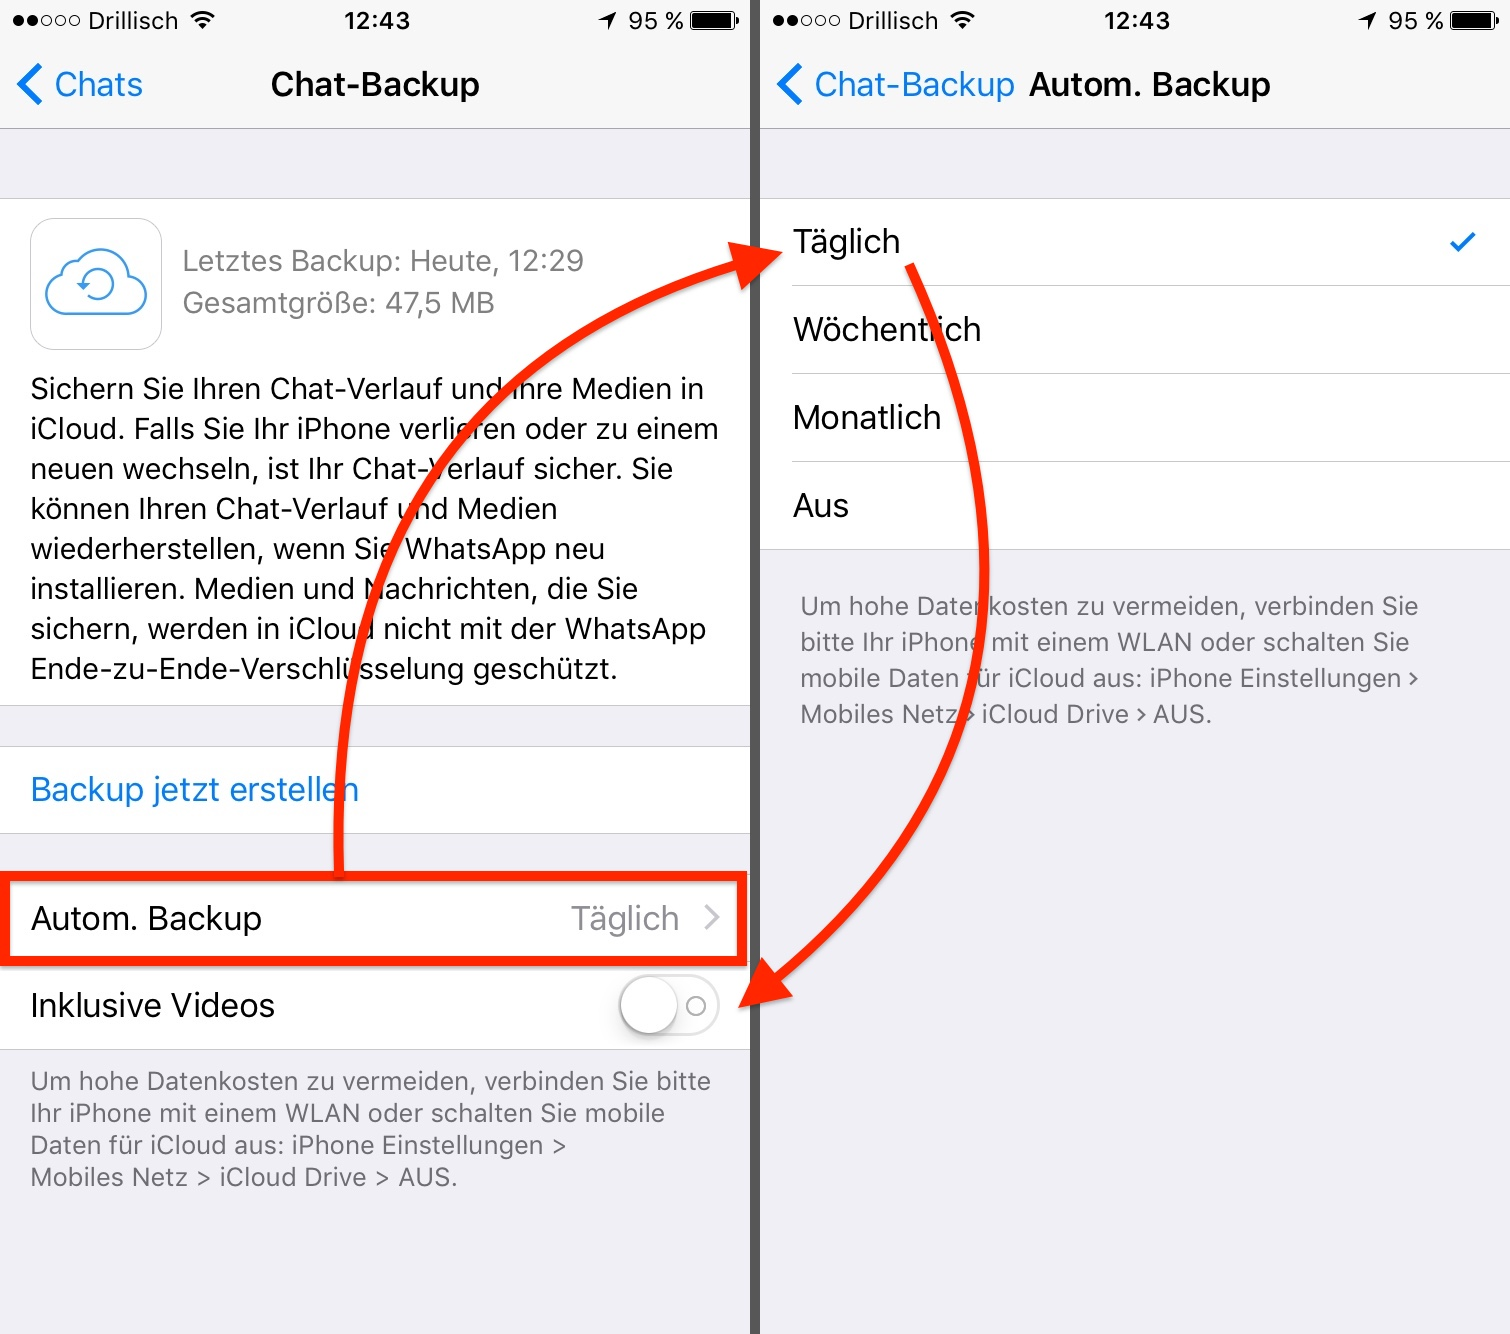 whatsapp backup wiederherstellen iphone funktioniert nicht